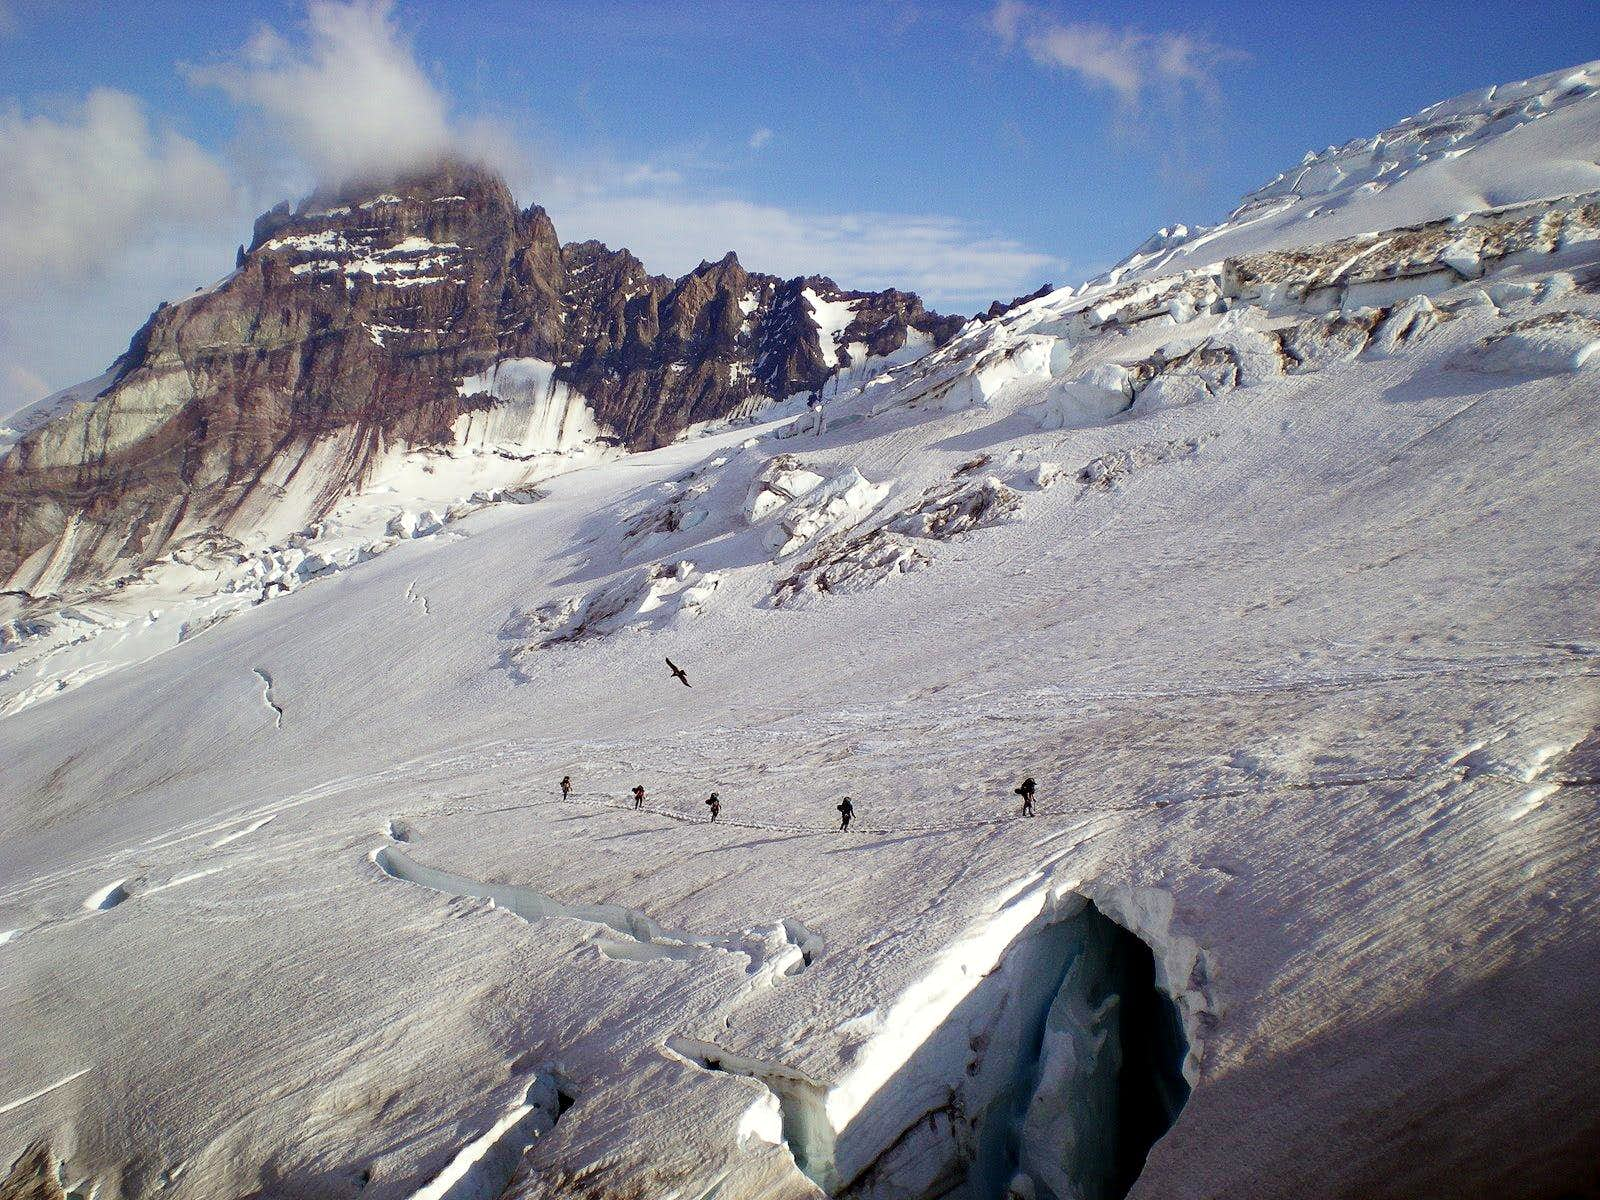 Emmons-Winthrop Glacier Route